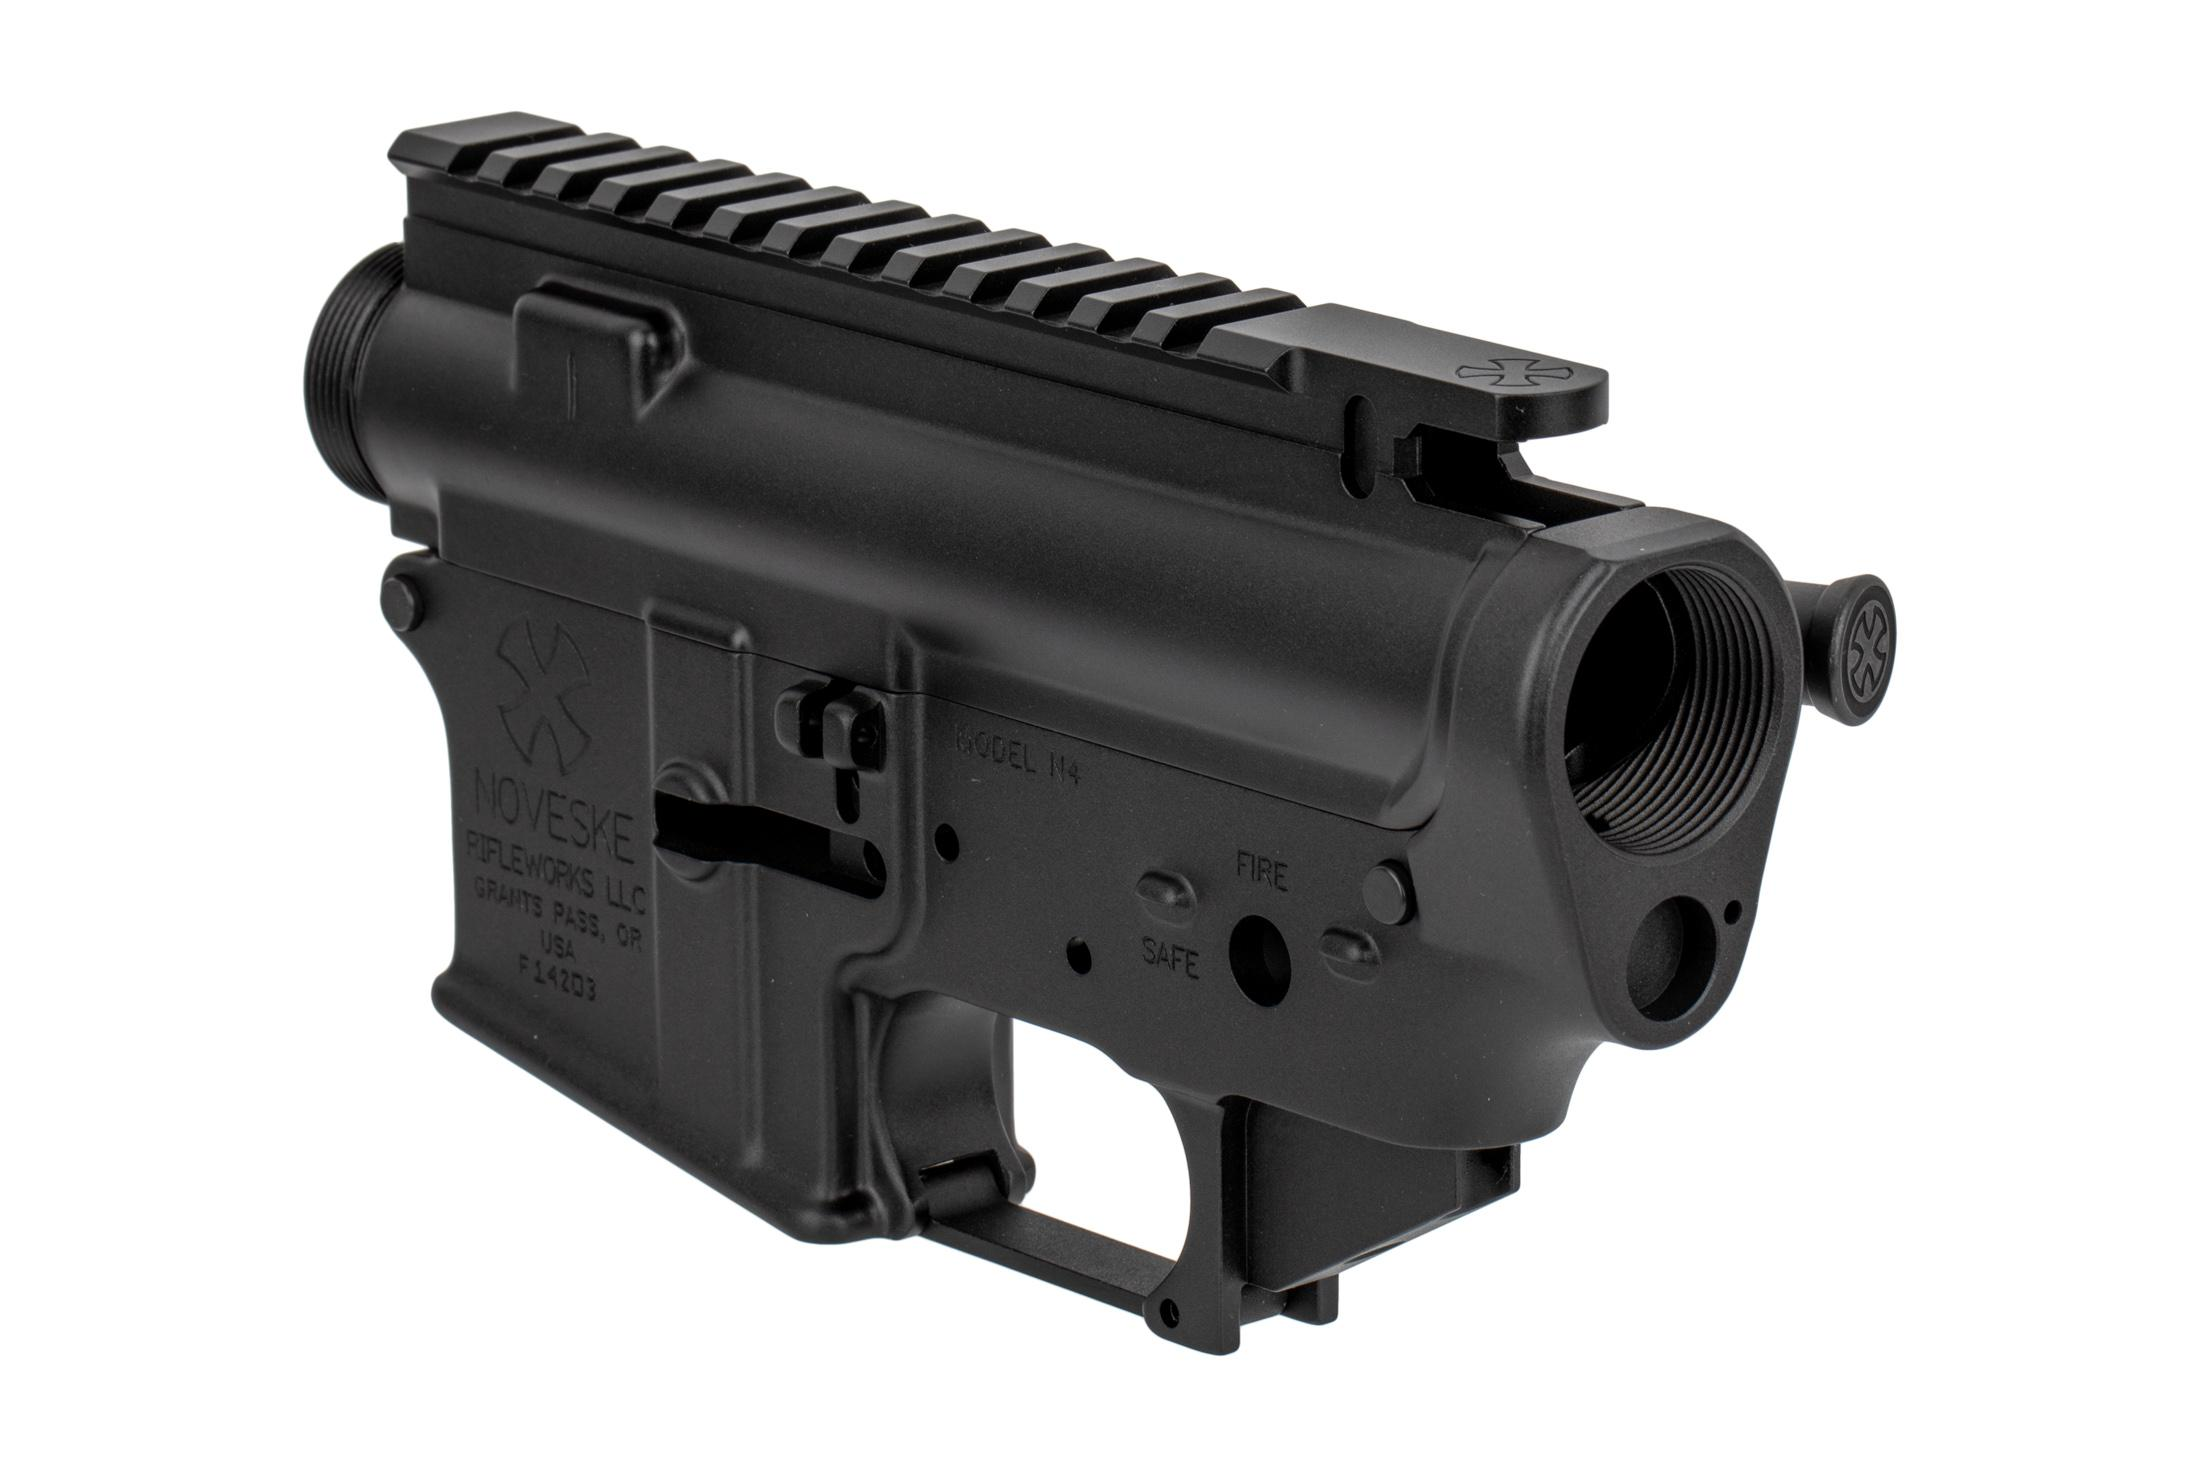 The Noveske N4 Gen I AR-15 lower and upper receiver set comes with a Mil-Spec trigger